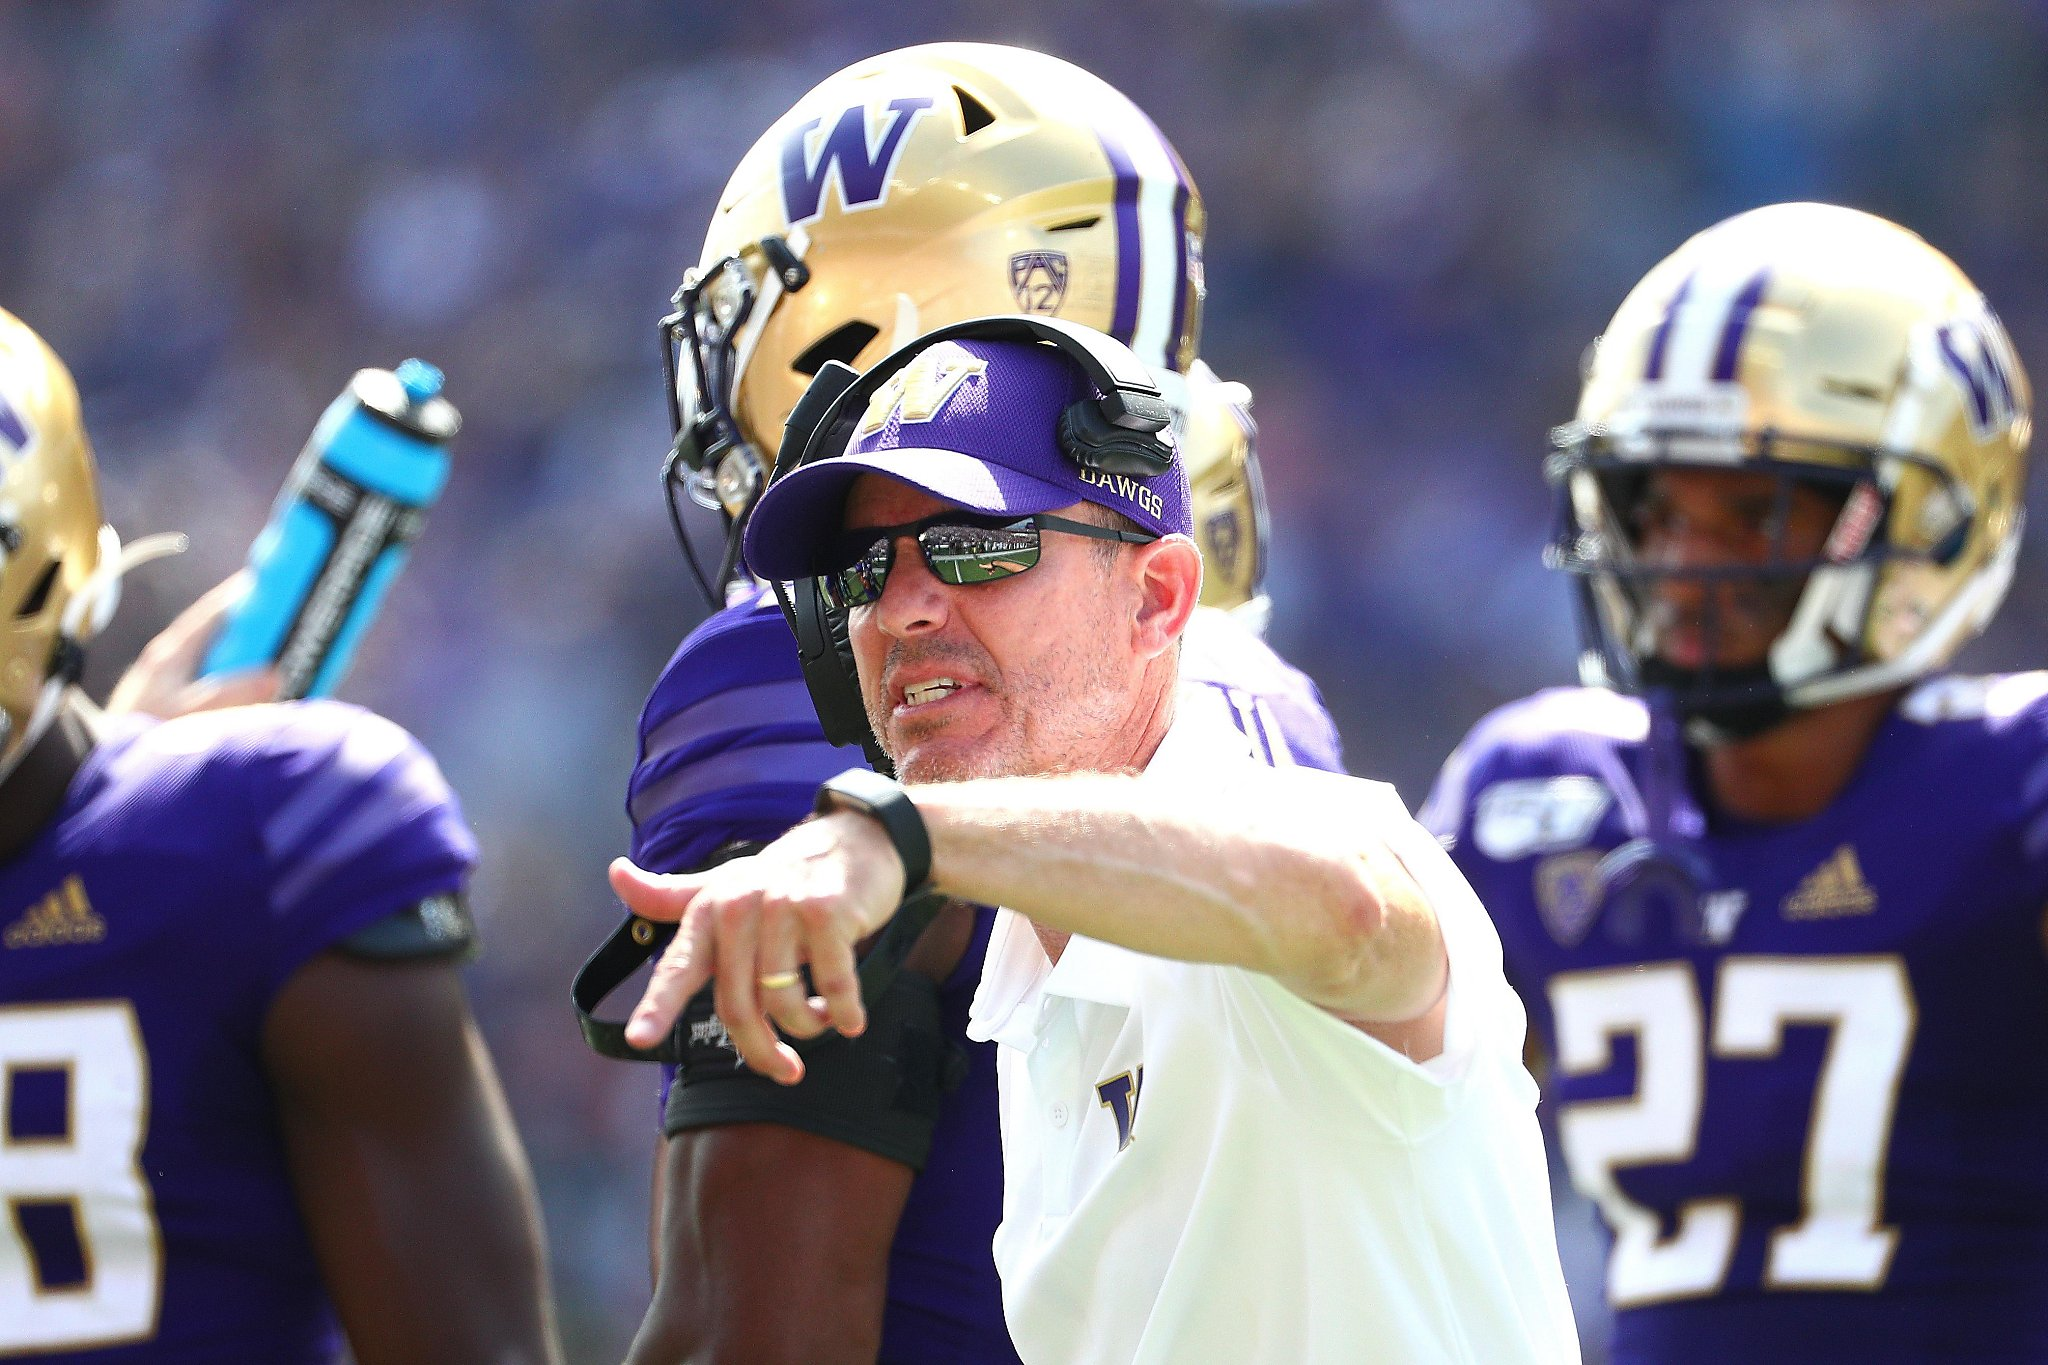 How important is the Huskies' road clash with BYU tomorrow?